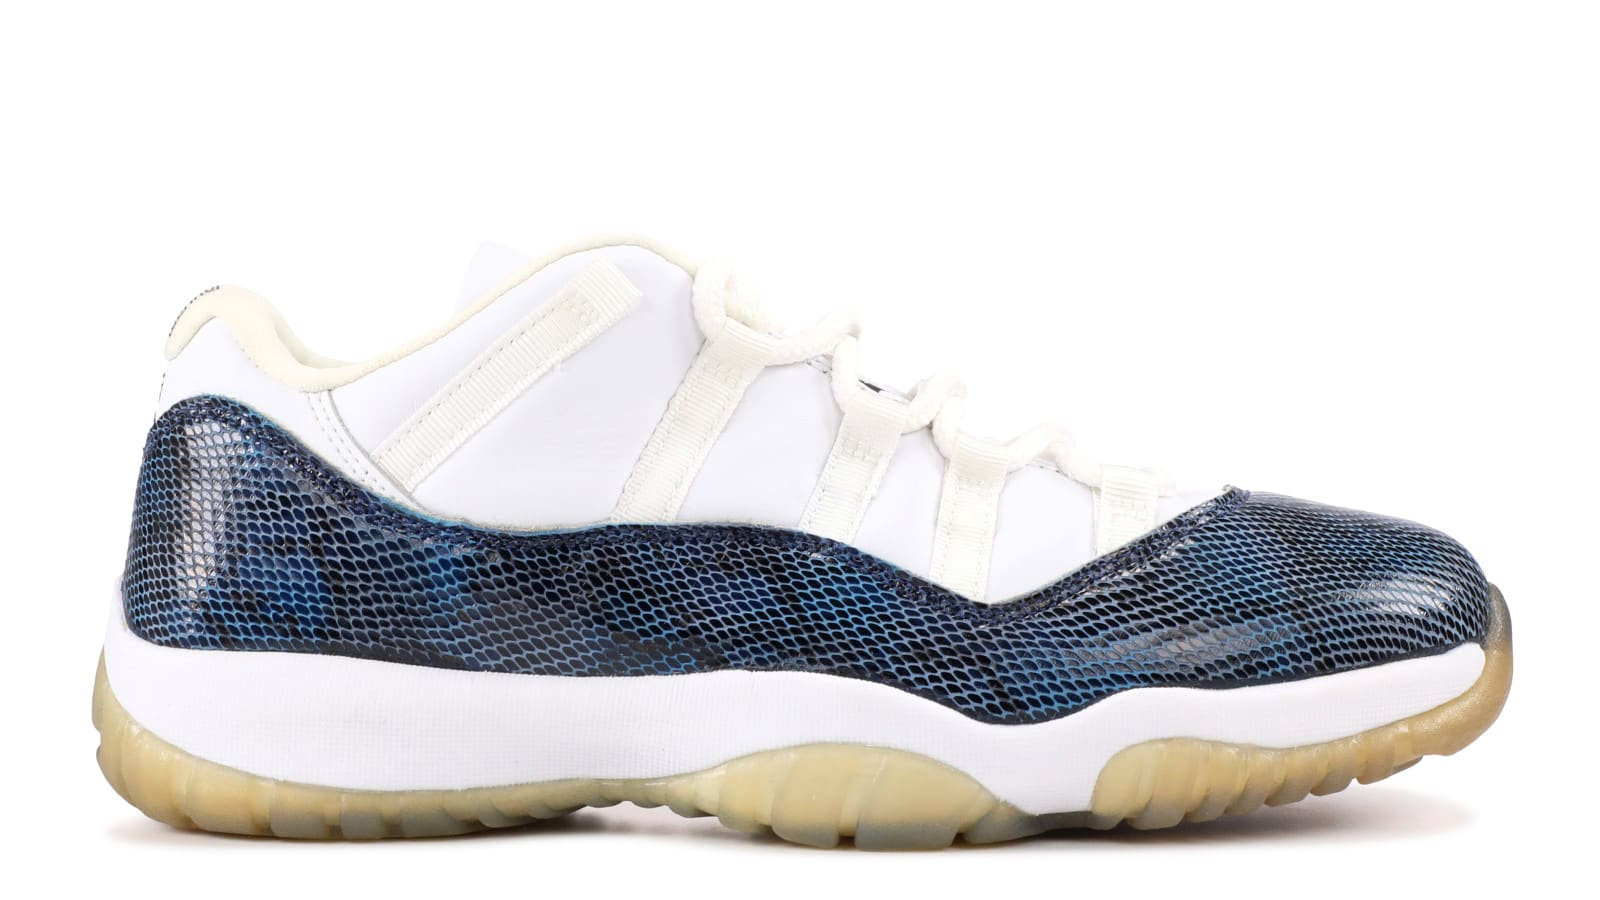 59b2b9aad009f0 Classic Air Jordan 11 Low Rumored to Return Next Summer.